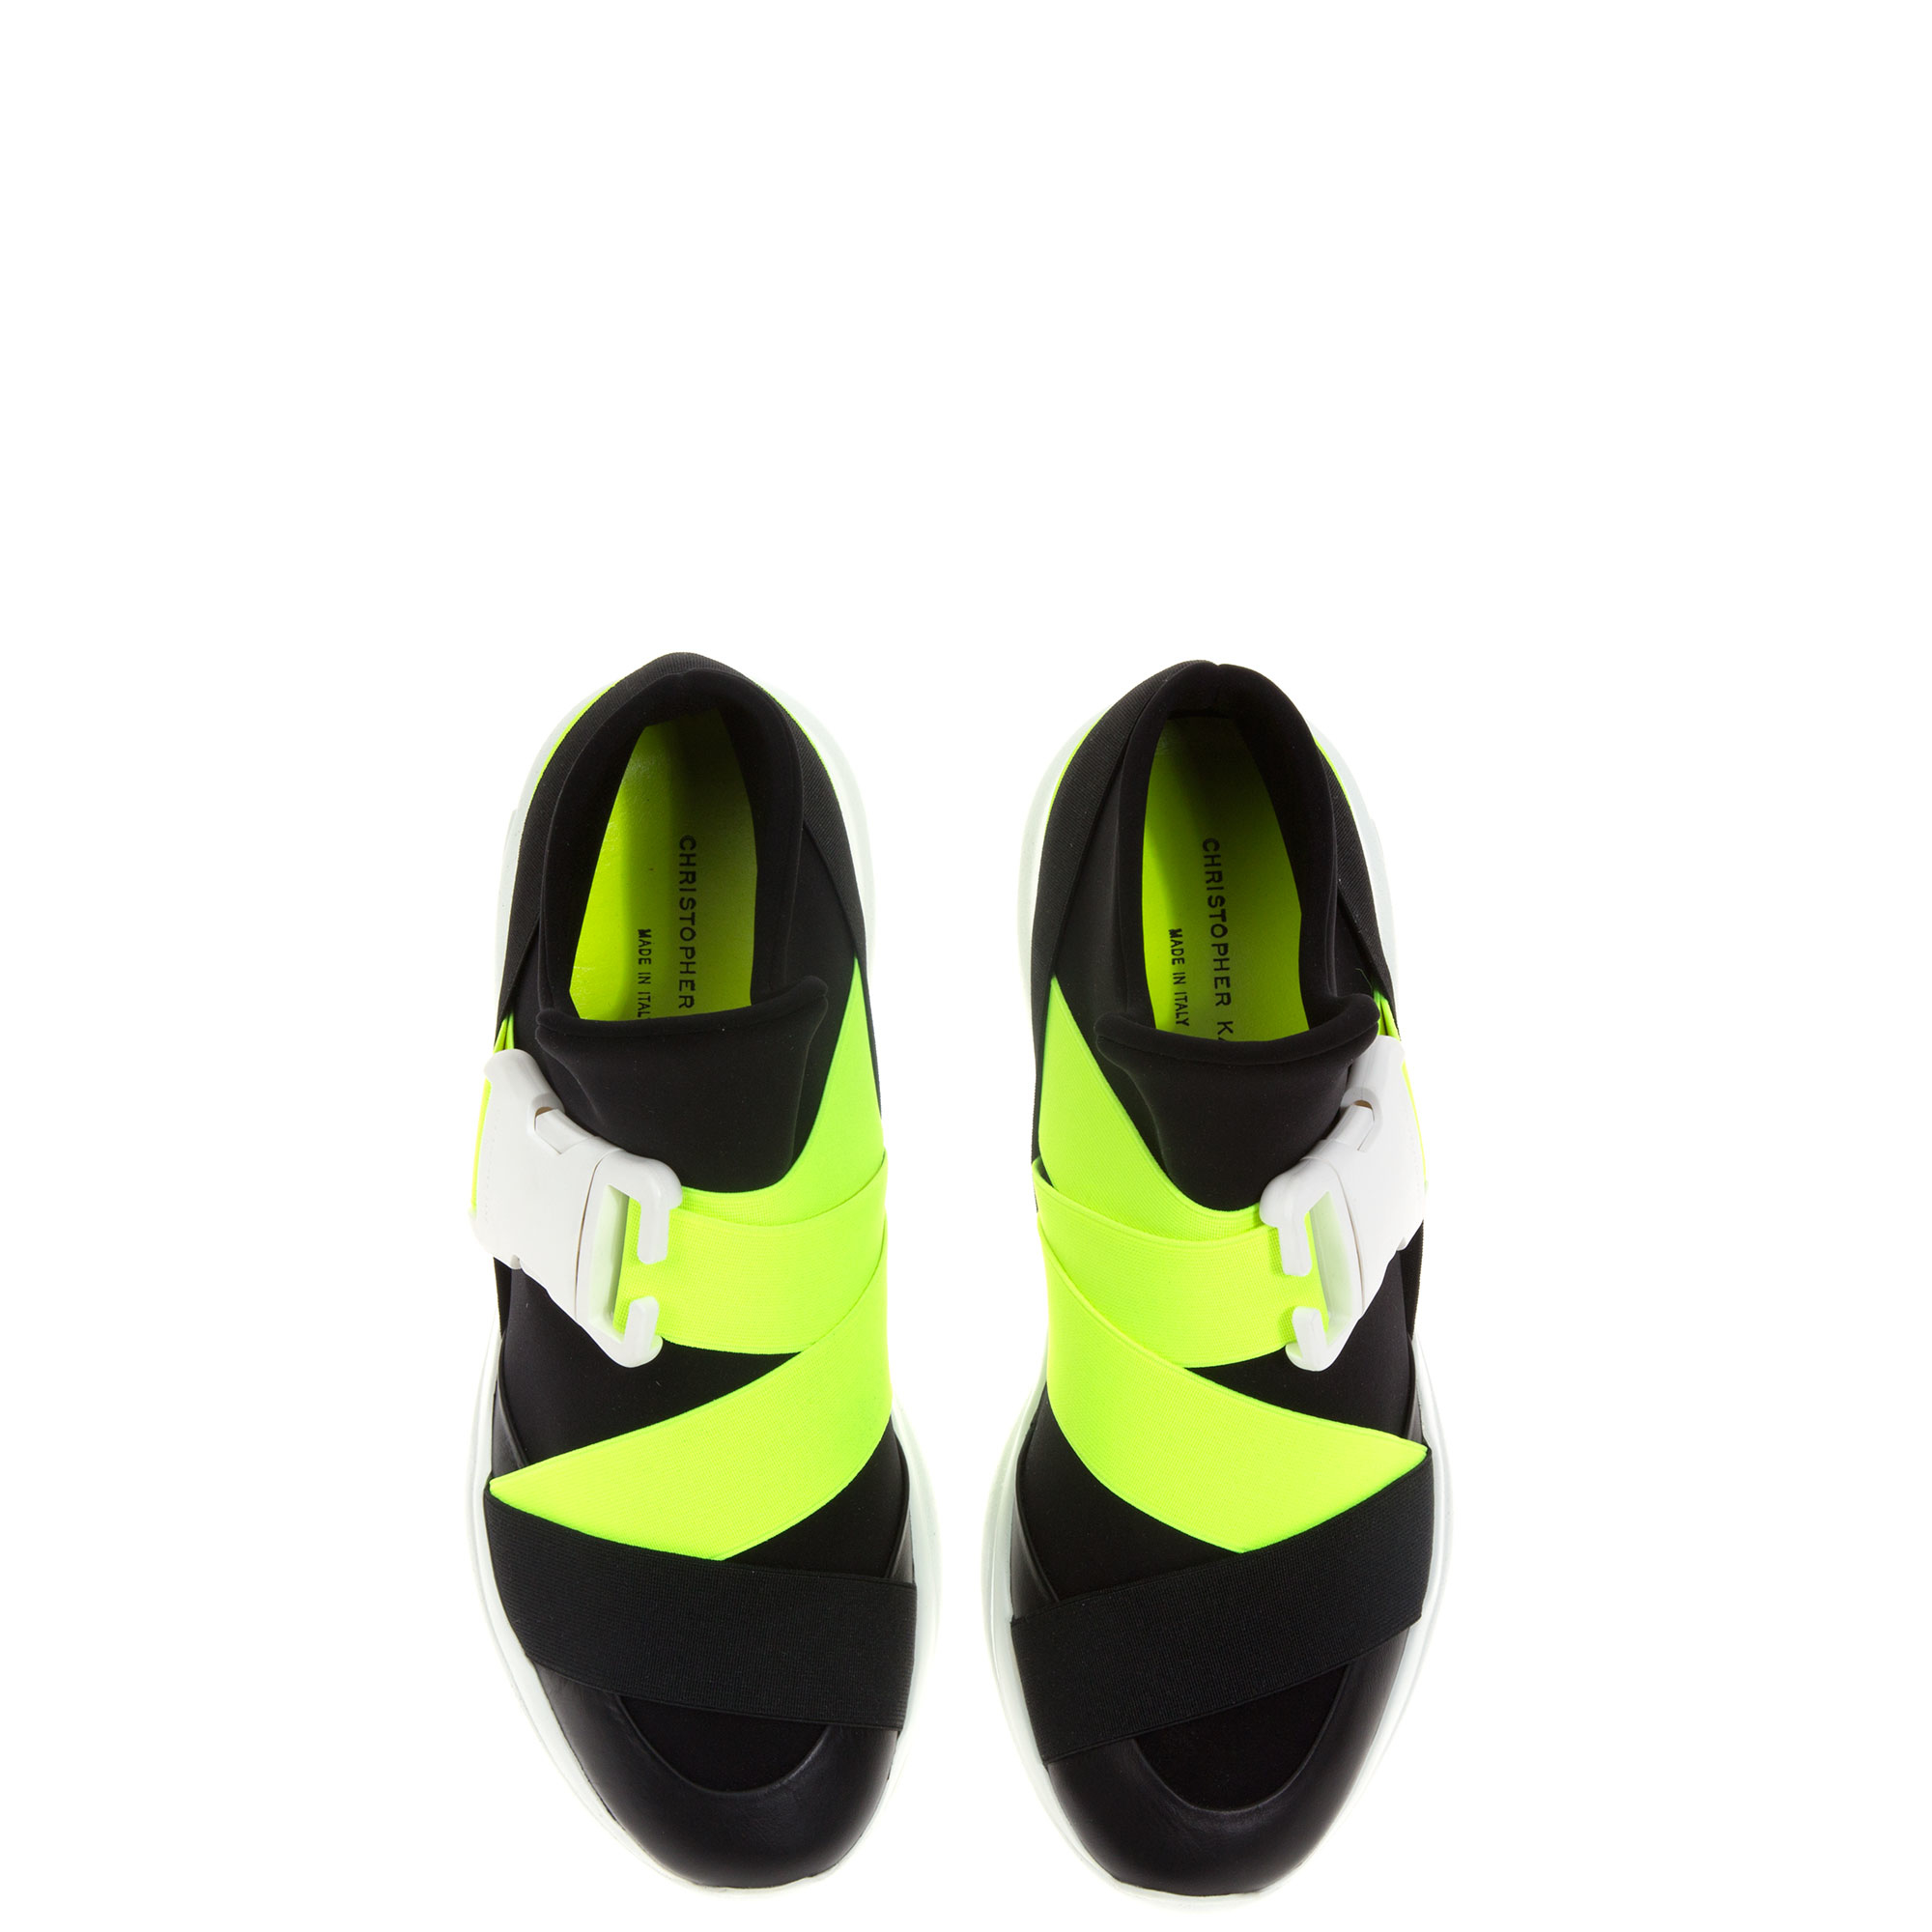 Christopher kane Buckle Neon Sneakers in Black for Men